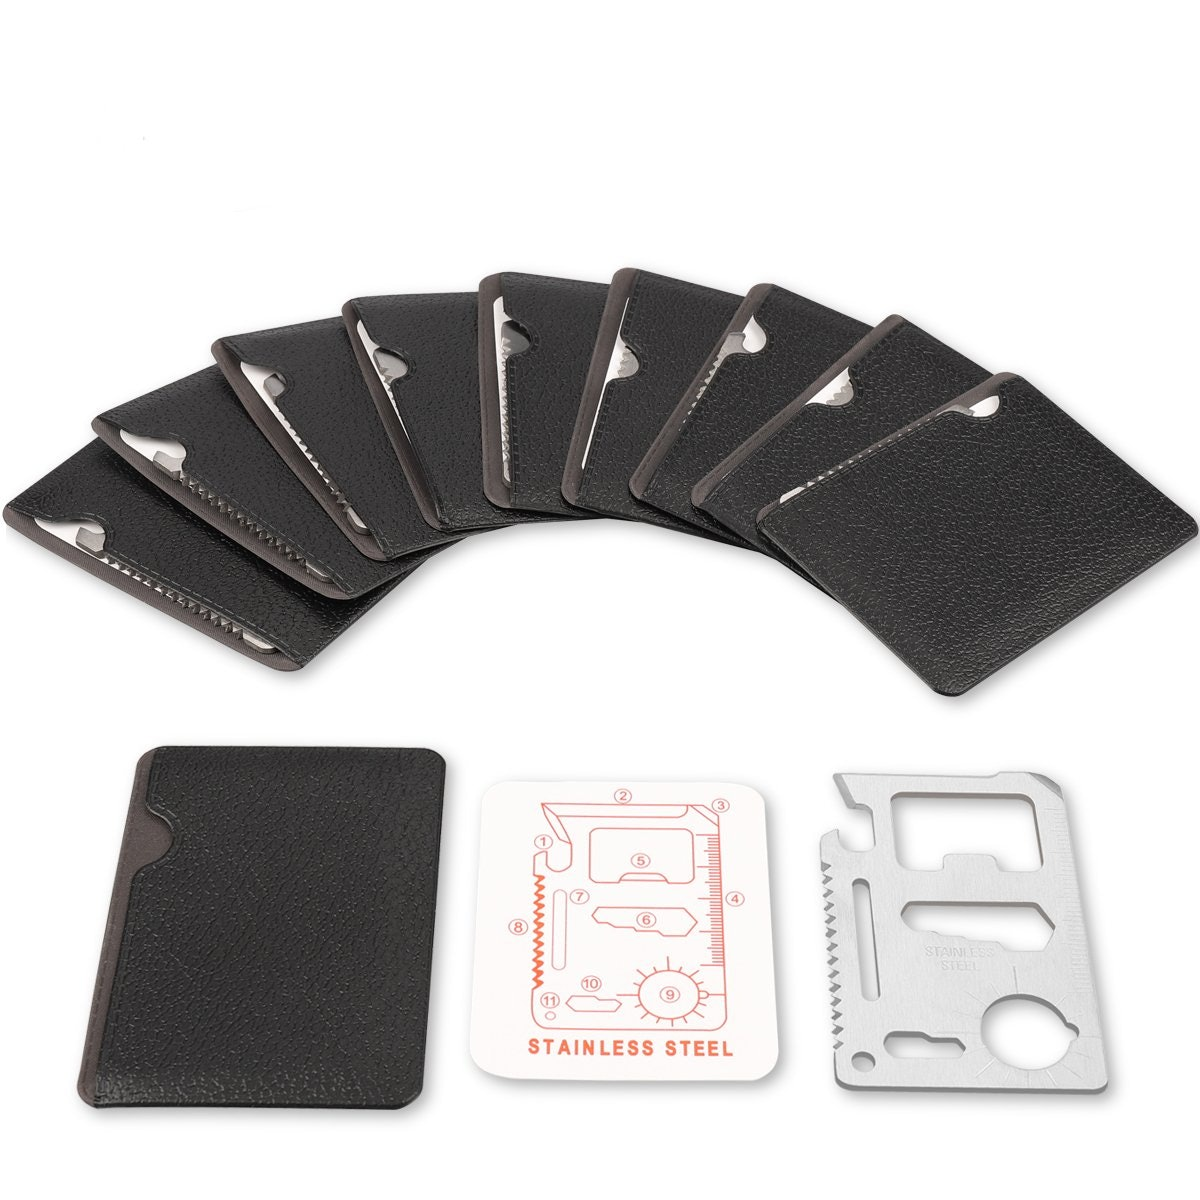 PGXT Survival Card Tool (10 Pack)